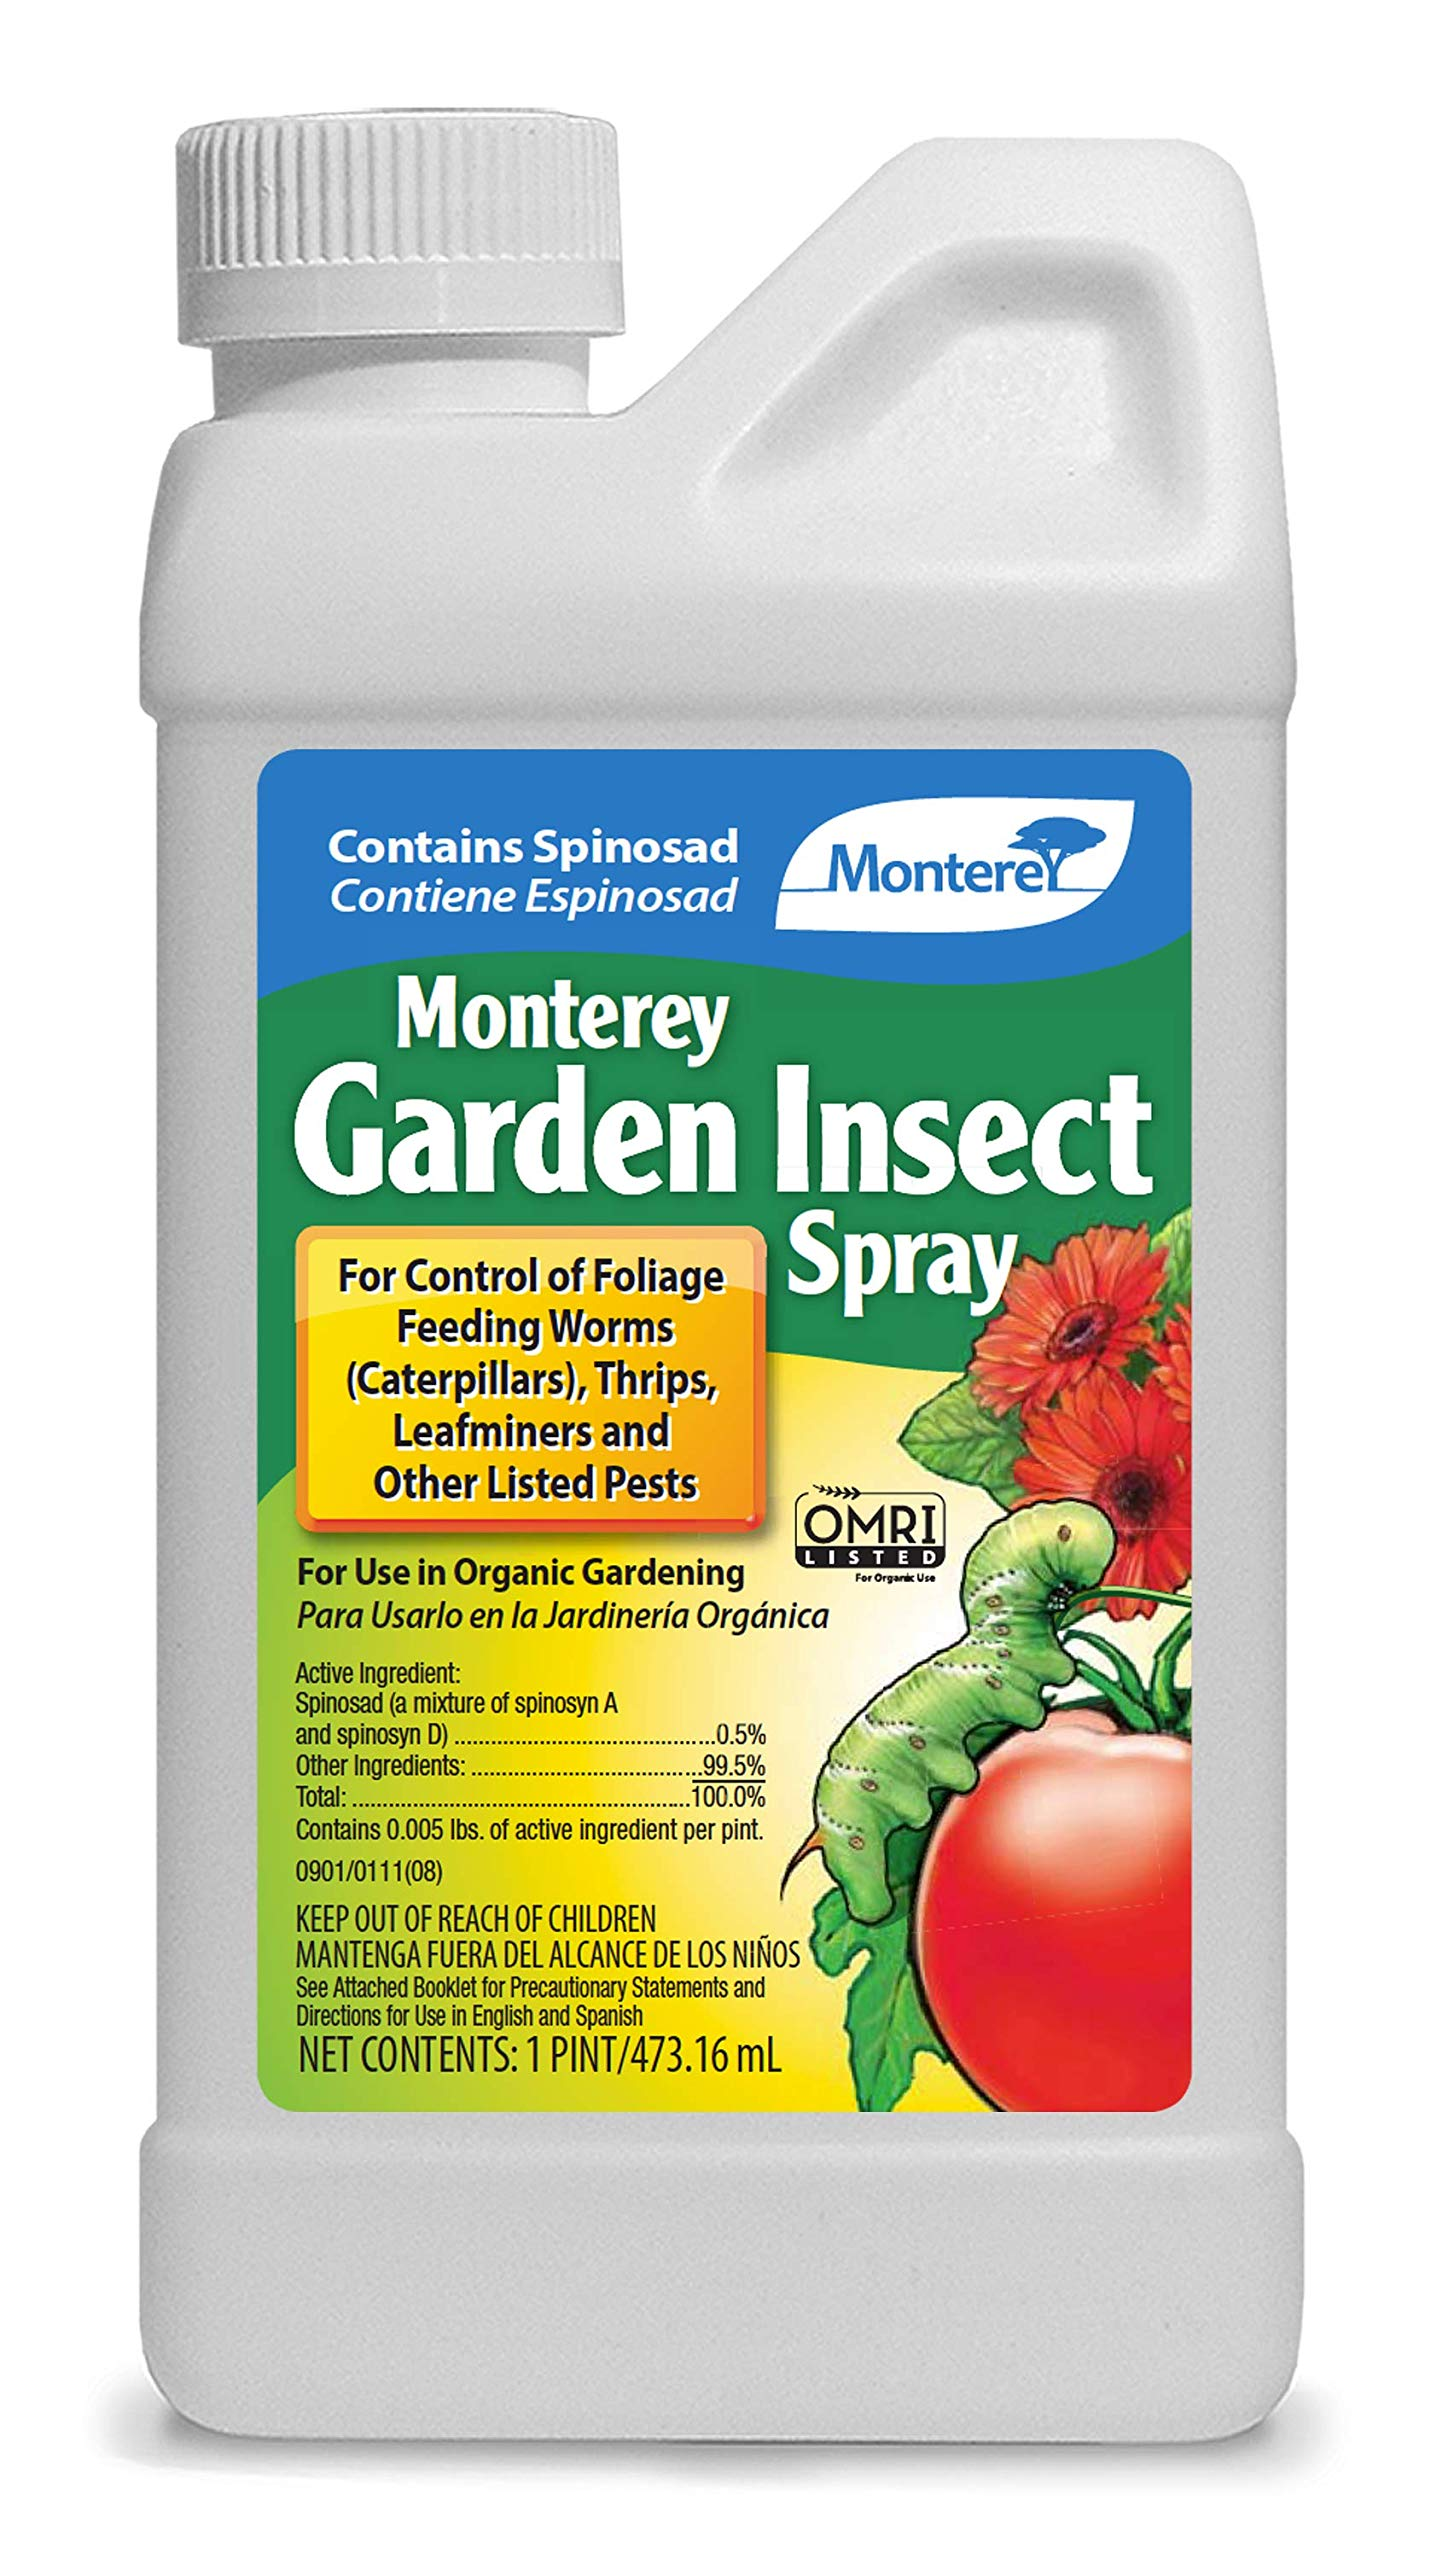 Monterey LG6150 Garden Insect Spray, Insecticide & Pesticide with Spinosad Concentrate, 16 Oz